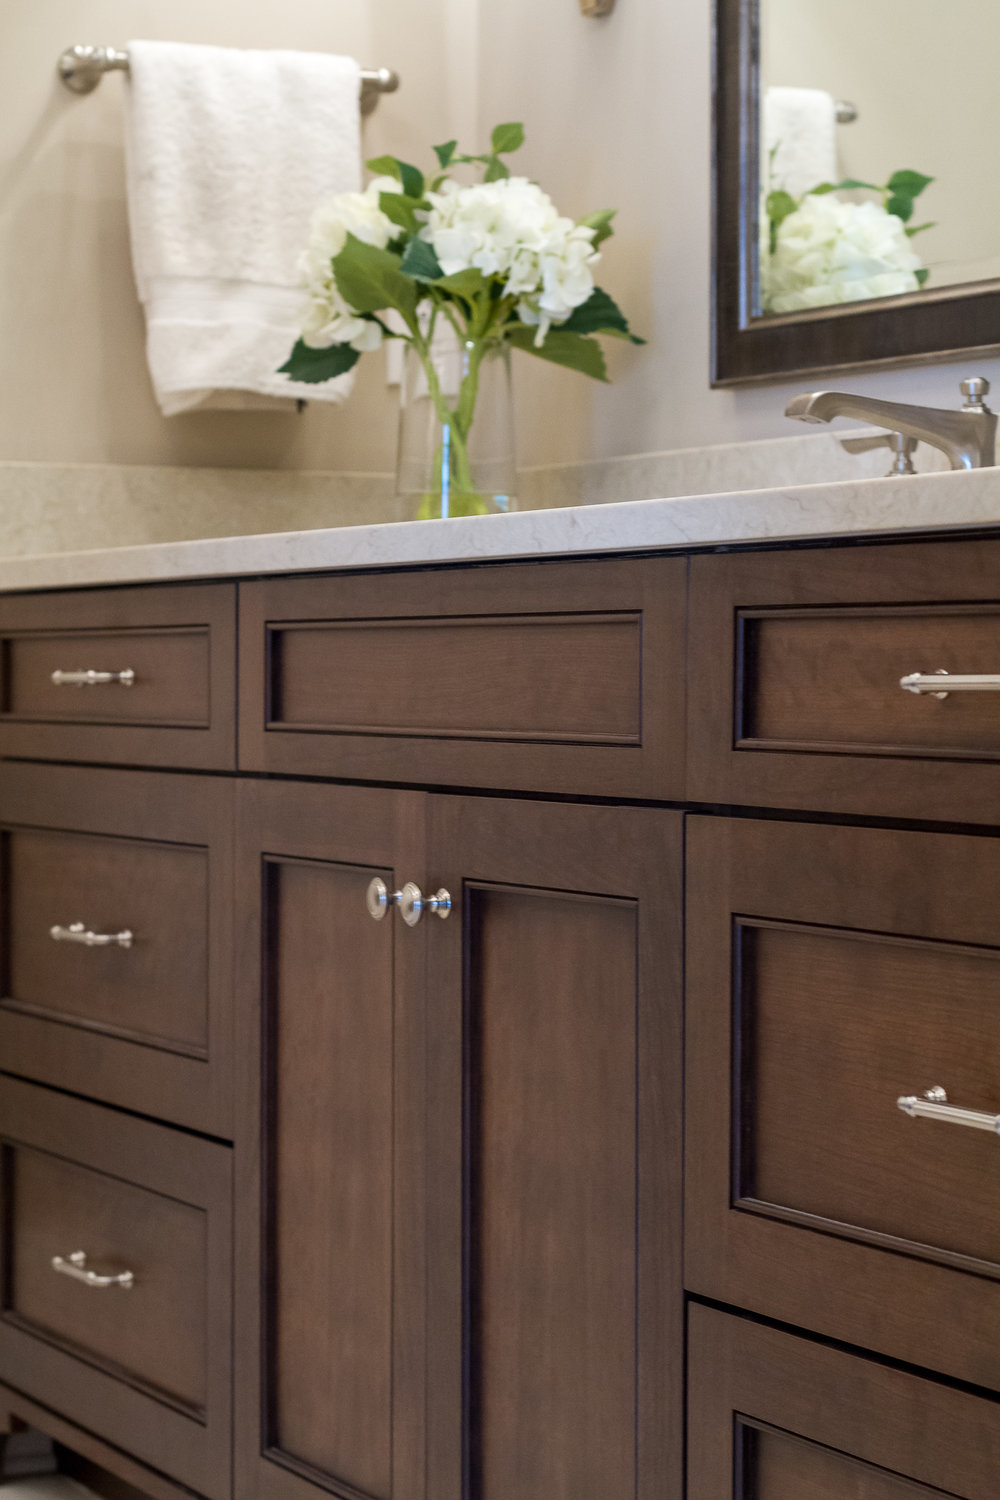 RES Interiors Washam Rd Master Bath Cabinet Detail Web-10.jpg